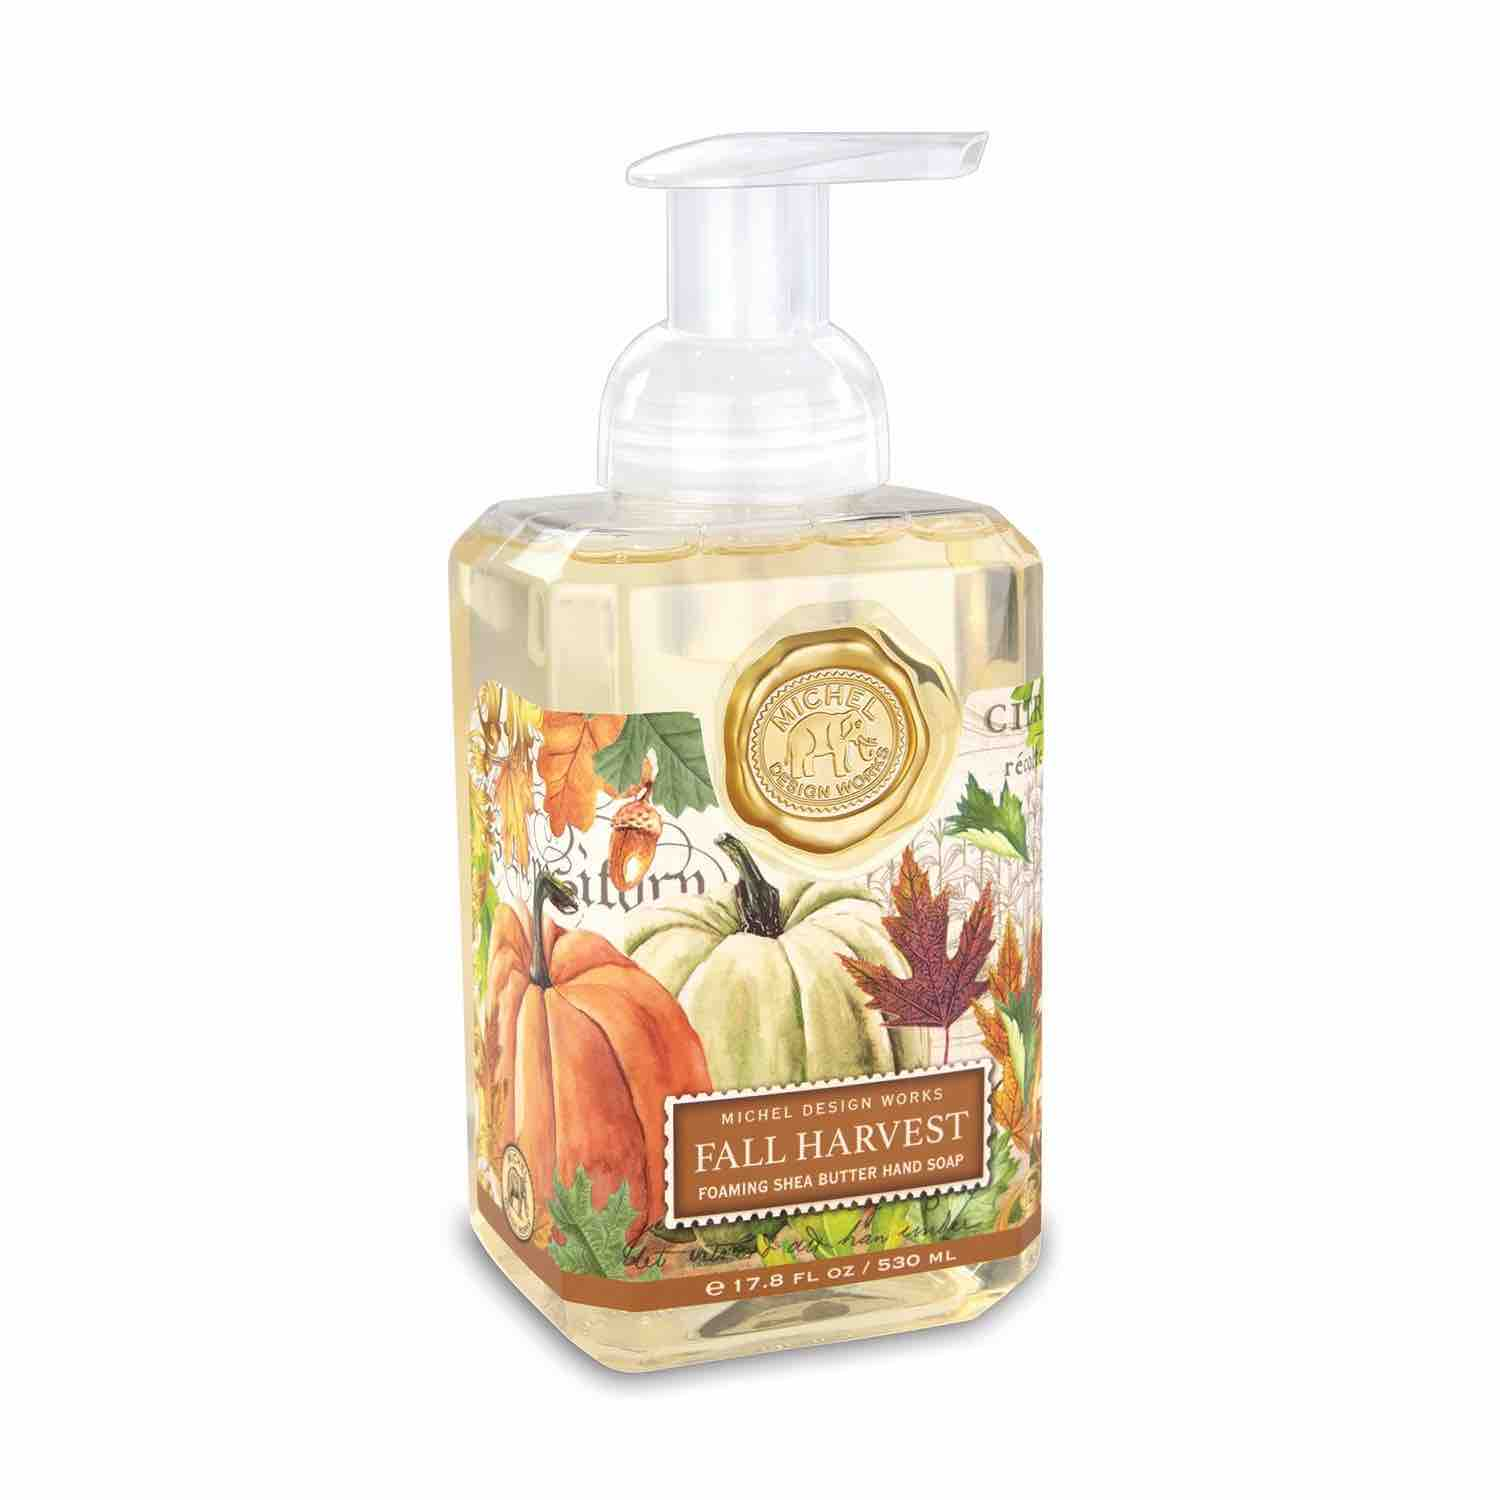 Michel Design Works Foaming Soap | Fall Harvest